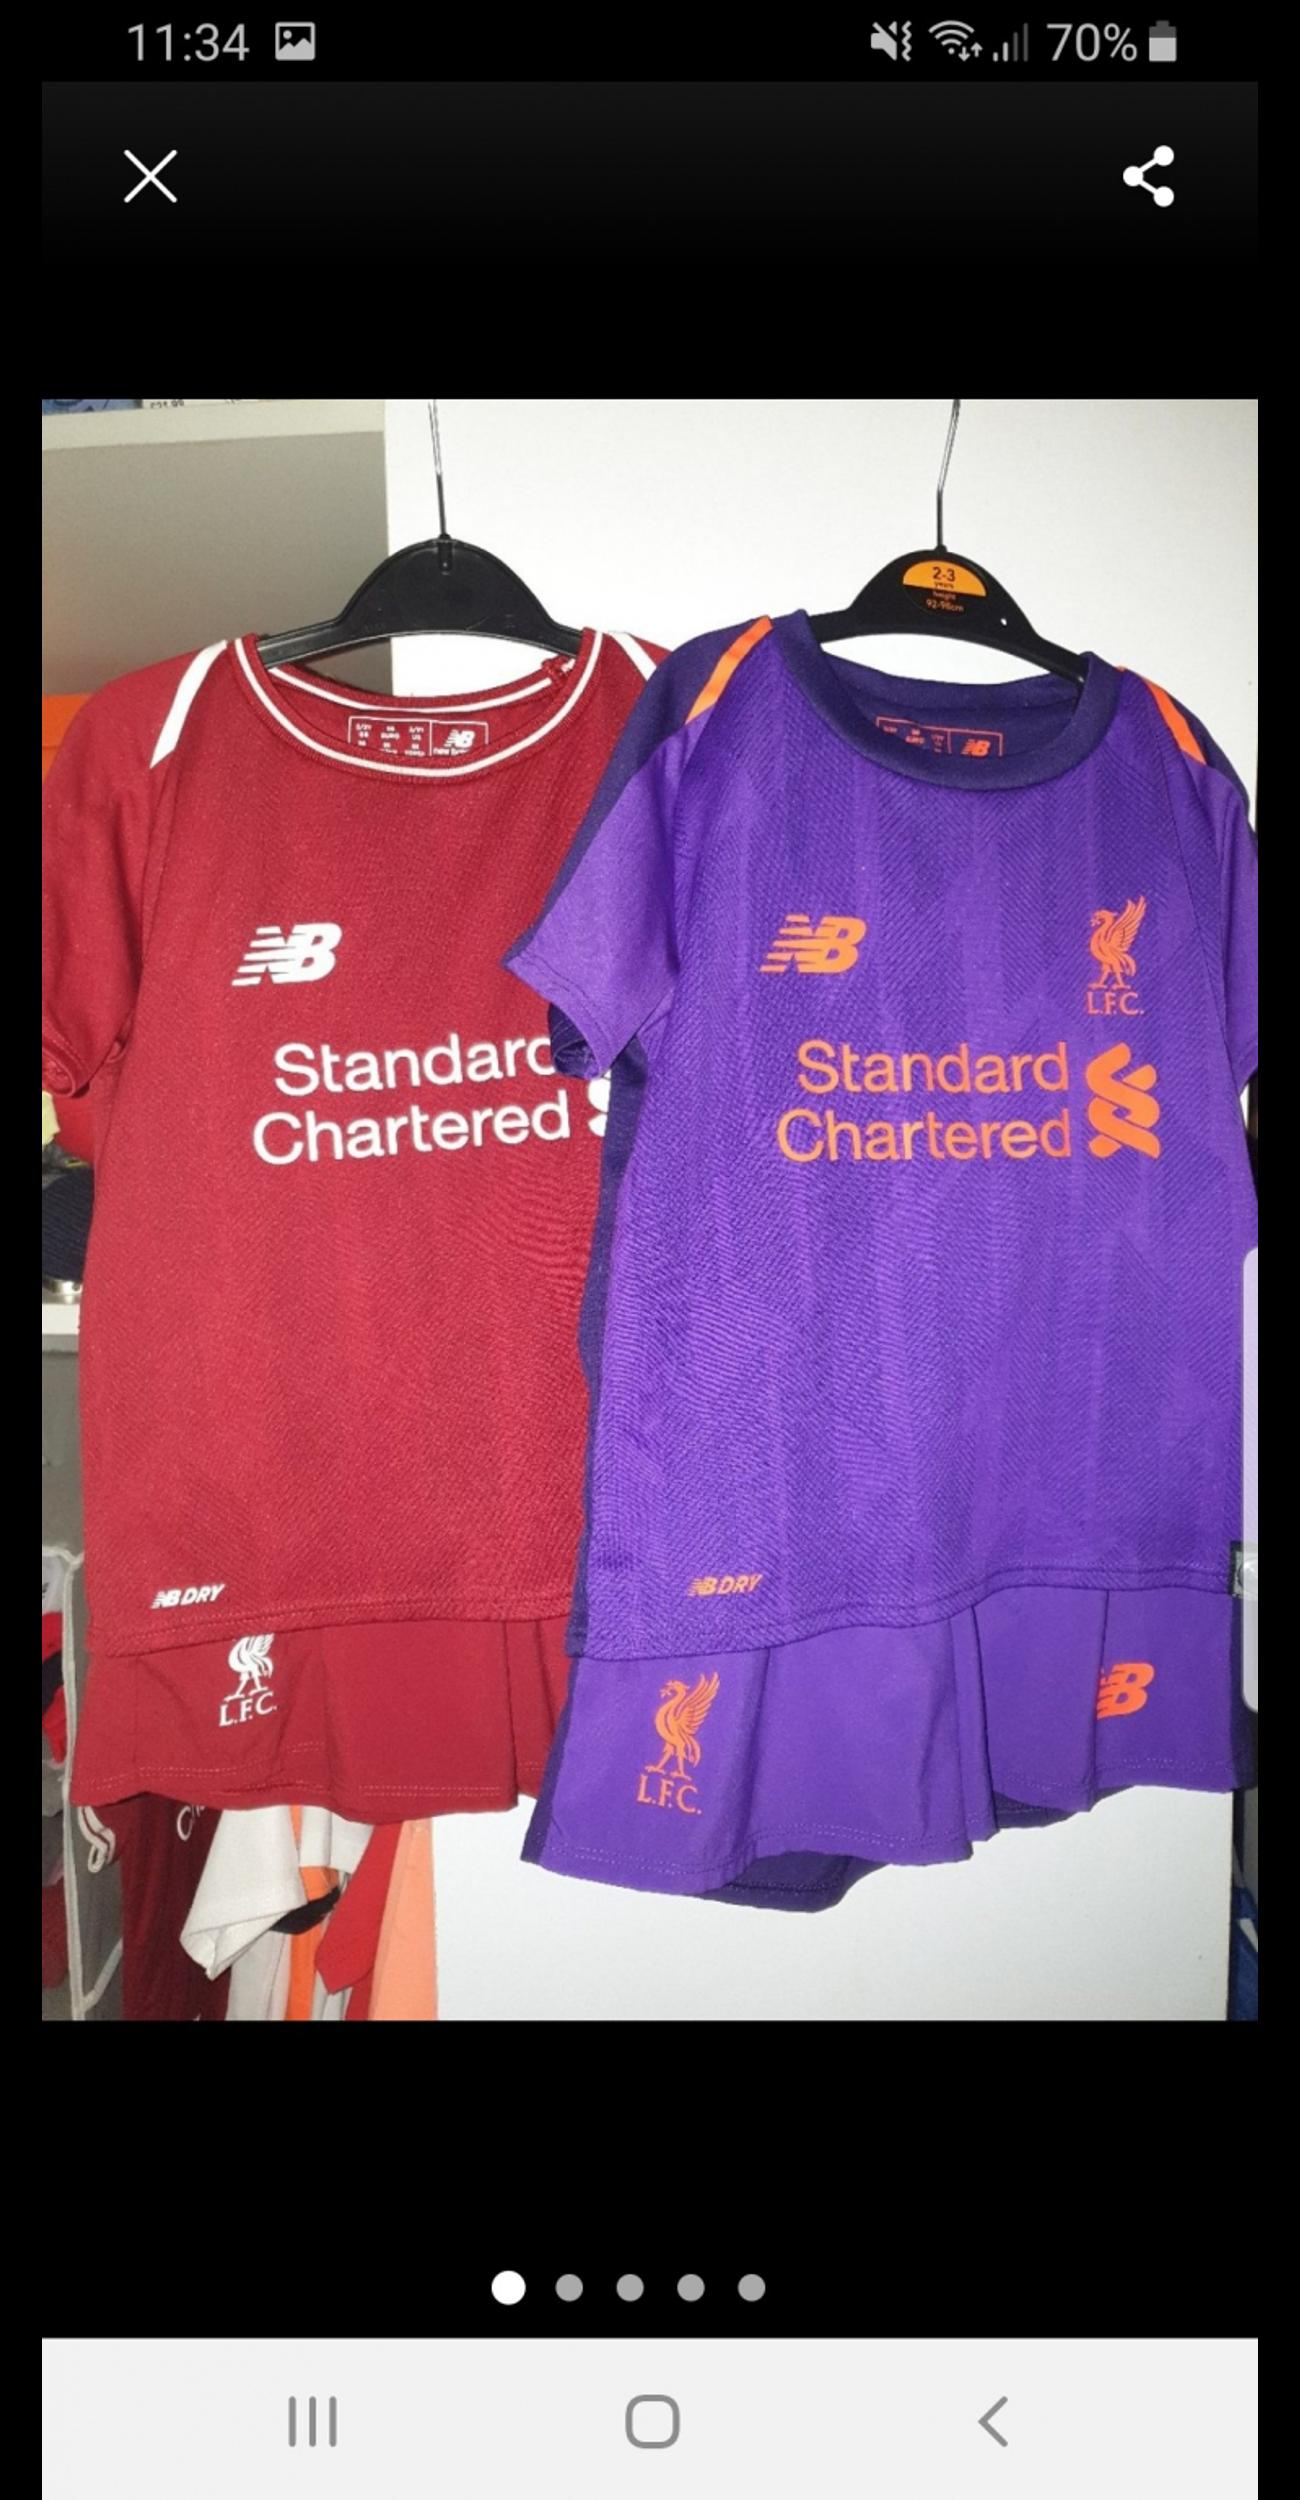 newest 2f0ea fe749 Unisex Liverpool Kits in L7 Liverpool for £10.00 for sale ...